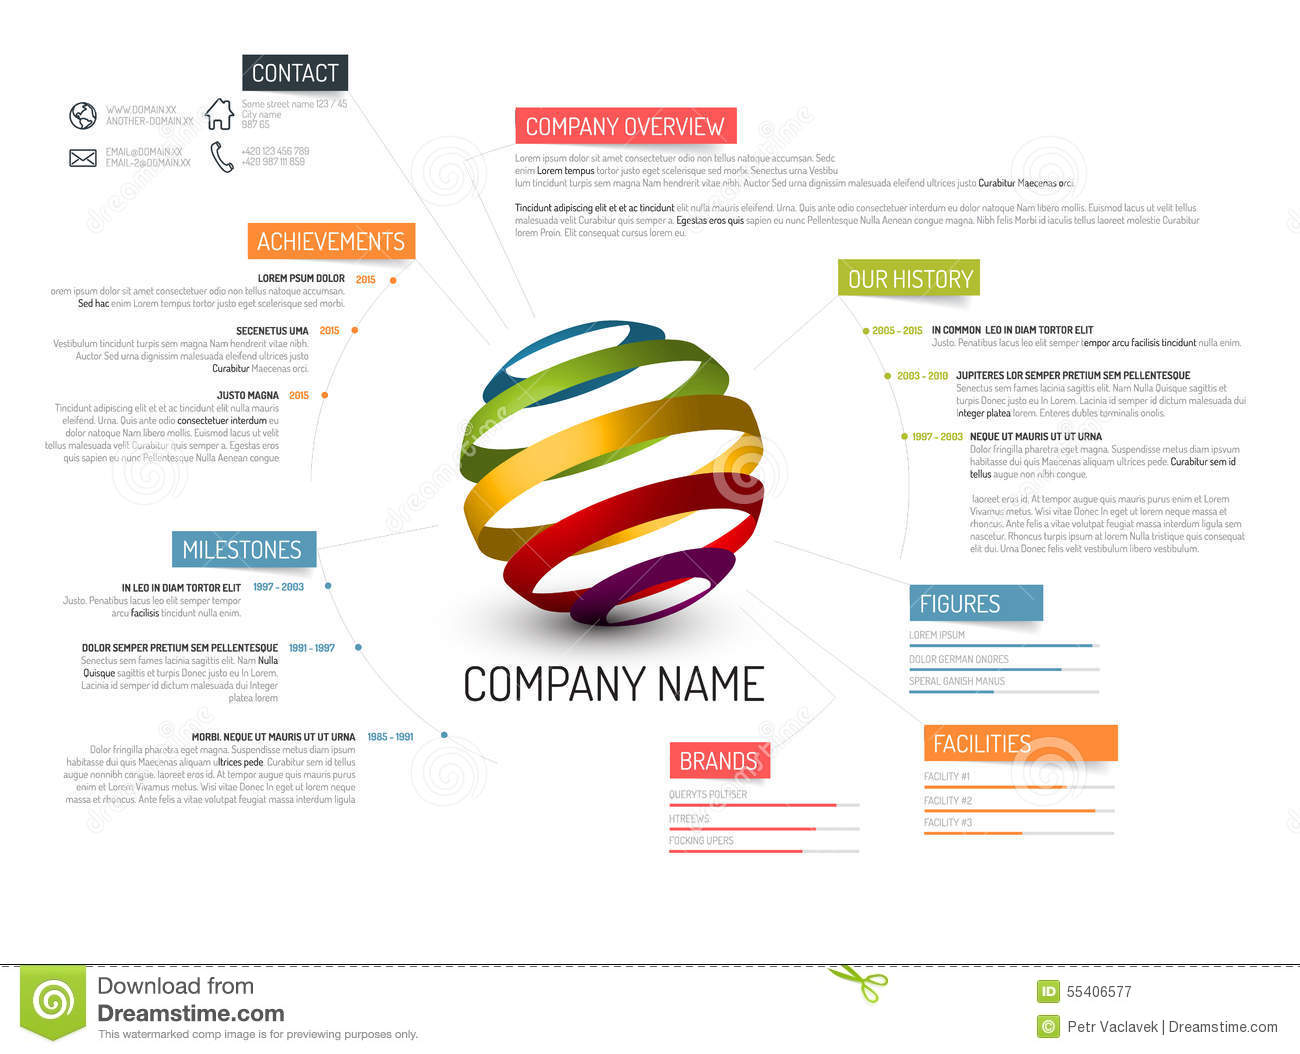 Company Overview Template Stock Illustration - Image: 55406577